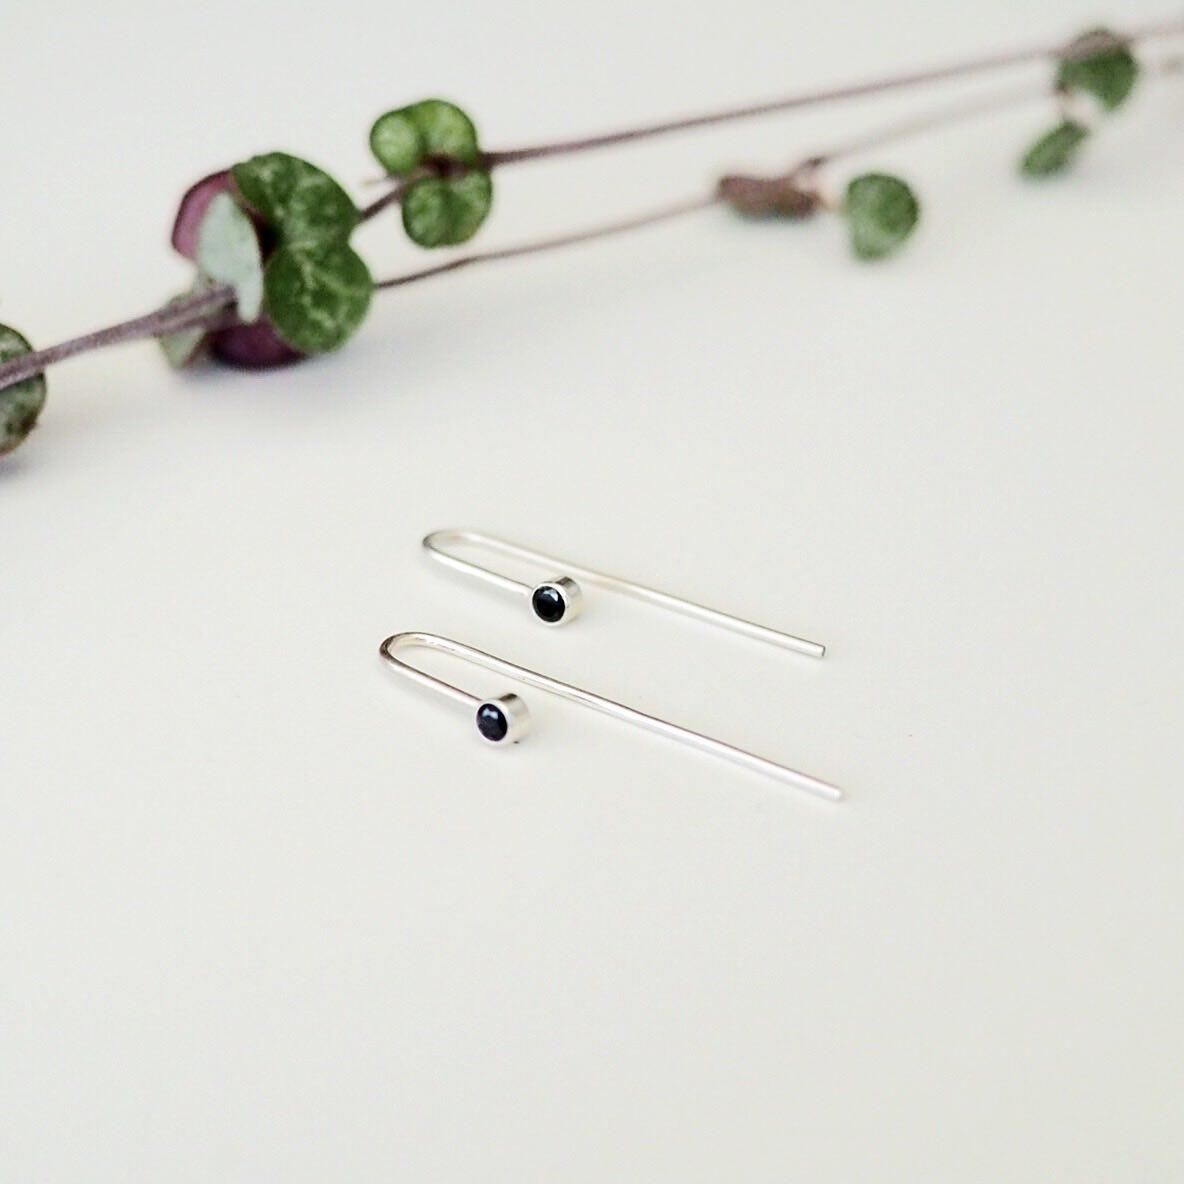 Meteor Drop Earrings - Ethical Black Spinel Gemstone